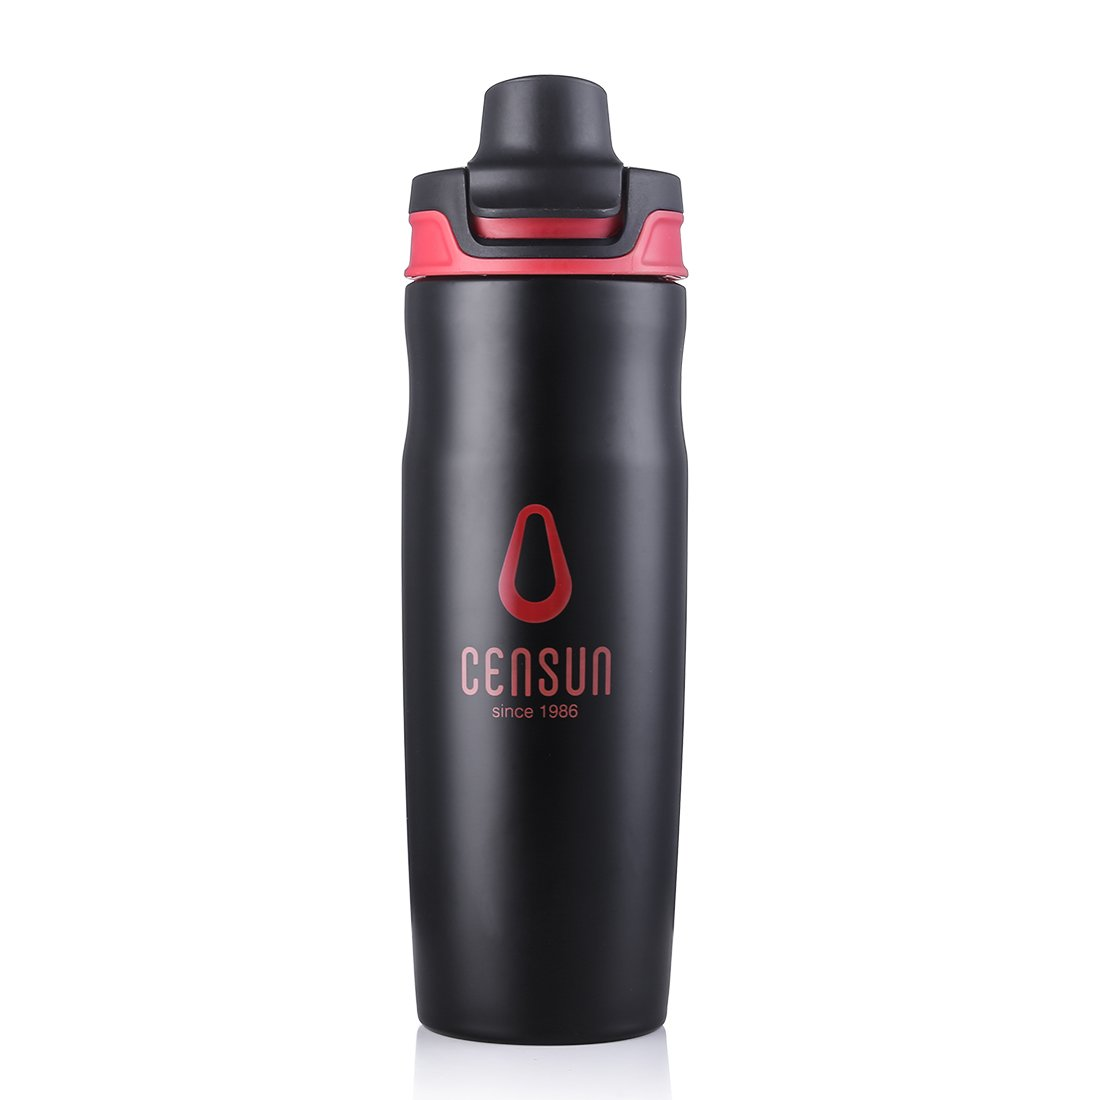 ZDZDZ 20OZ//600ML Stainless Steel Sports Water Bottle with Handle Ring 20OZ Wide Mouth Vacuum Insulated Thermos 288g